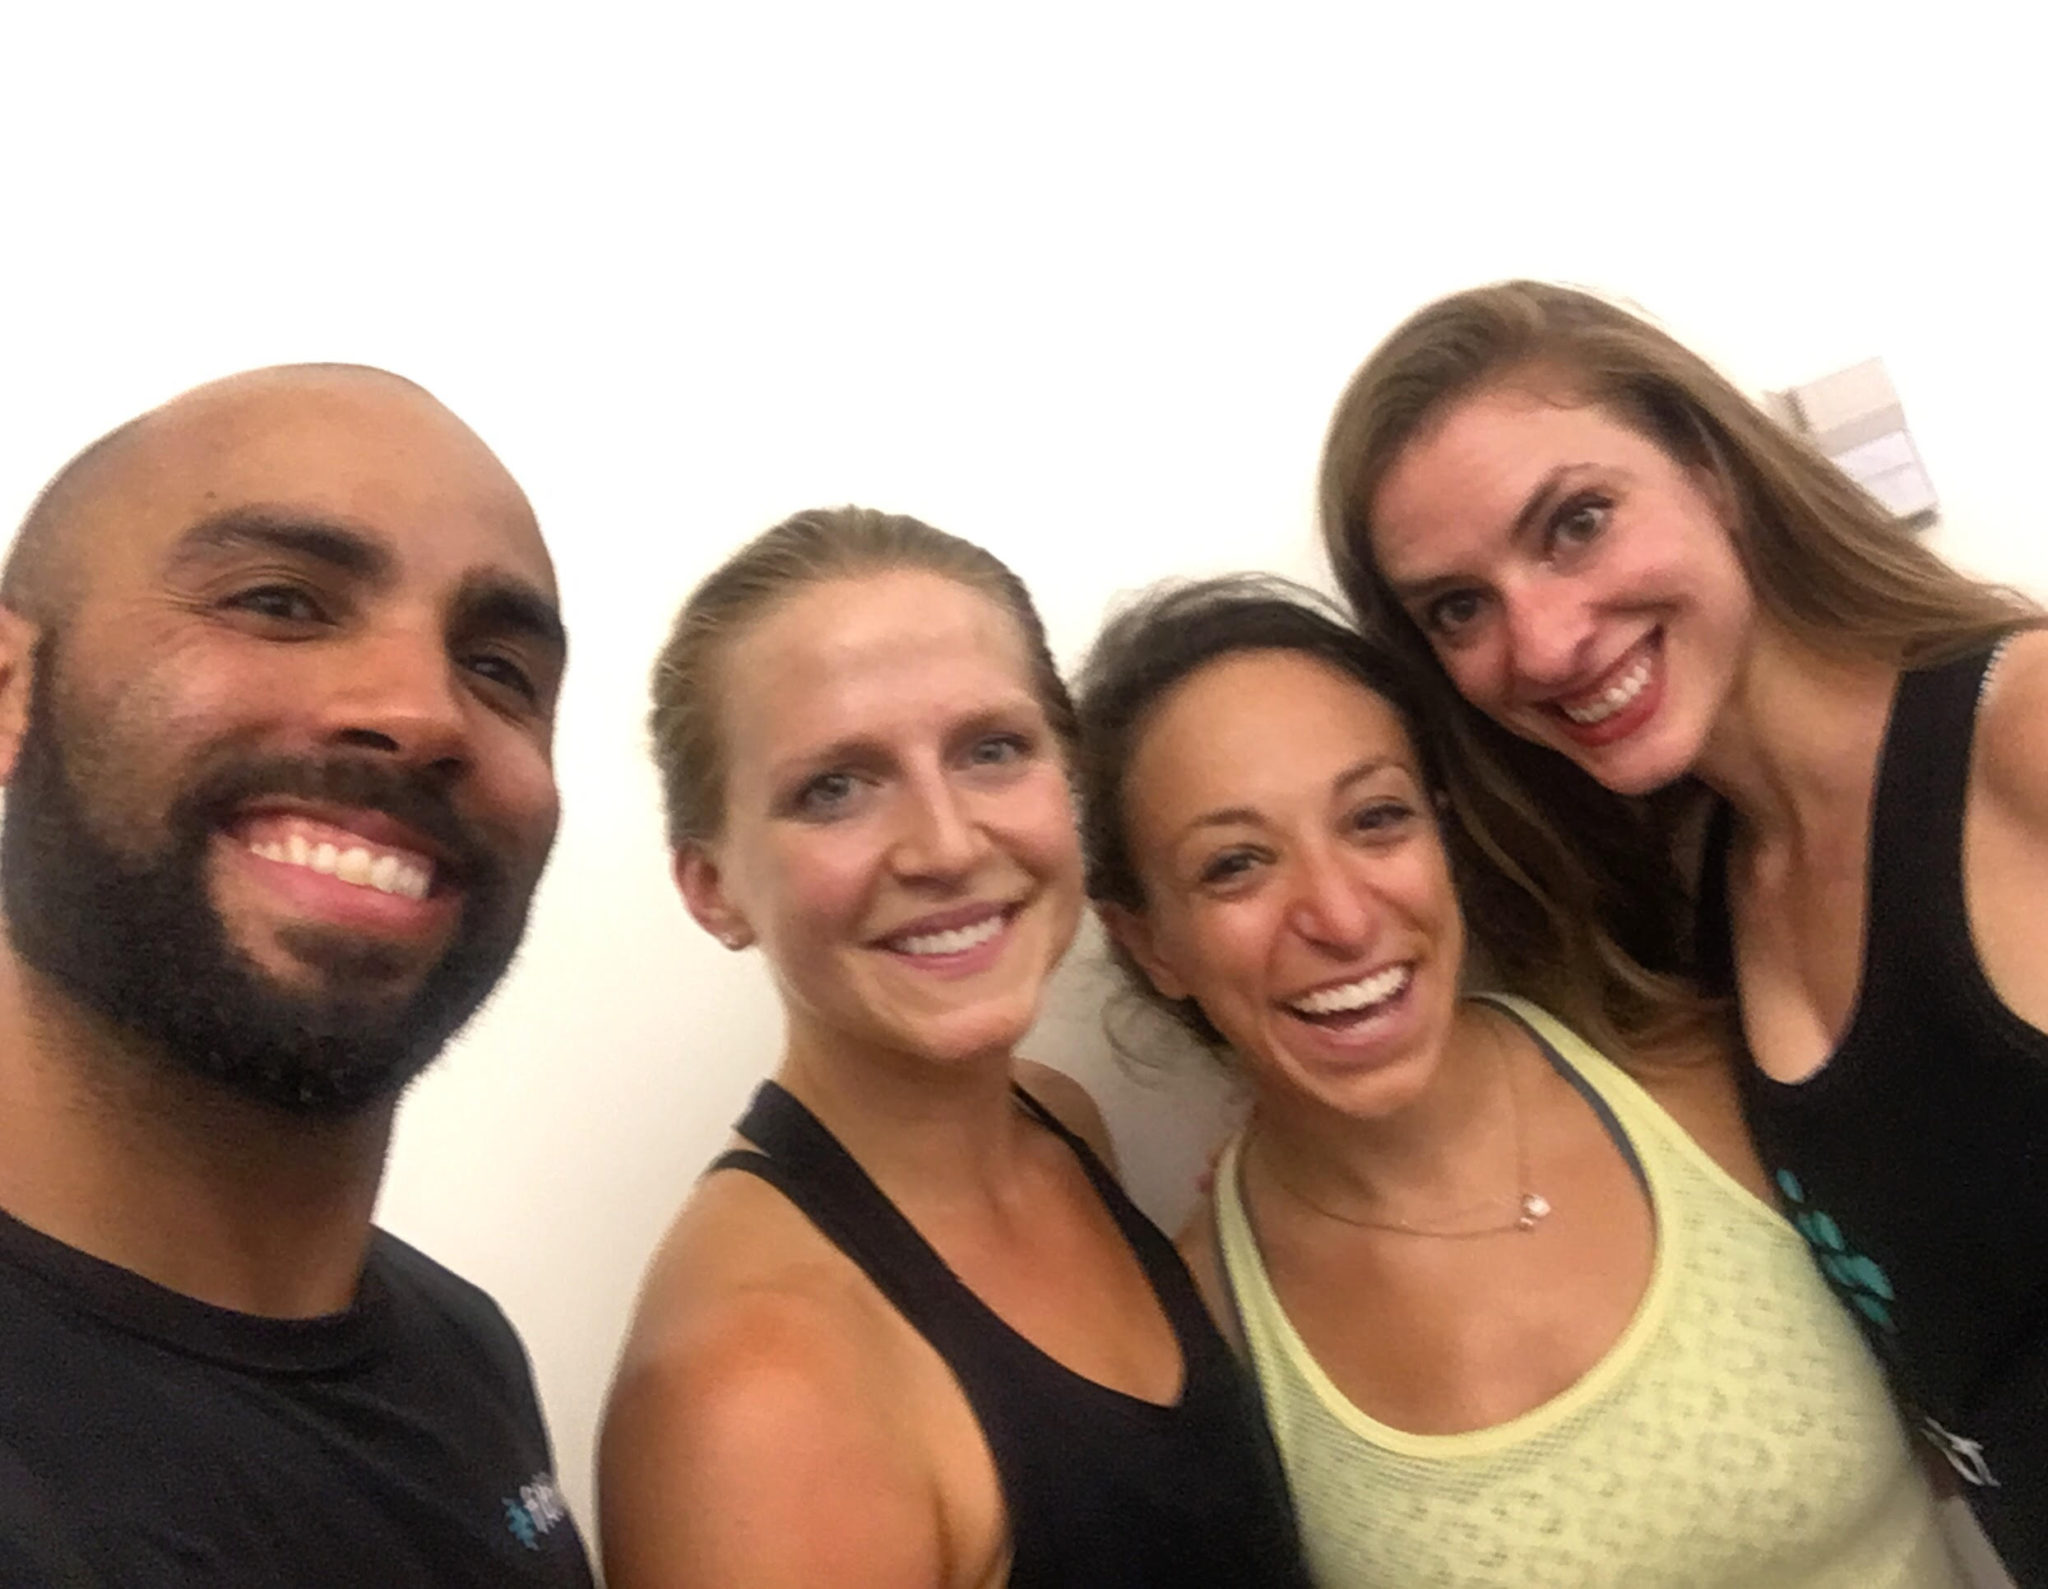 asweatlife_A Live Workout with Fitbit Local's Jenny Finkel and Jeremy Walton